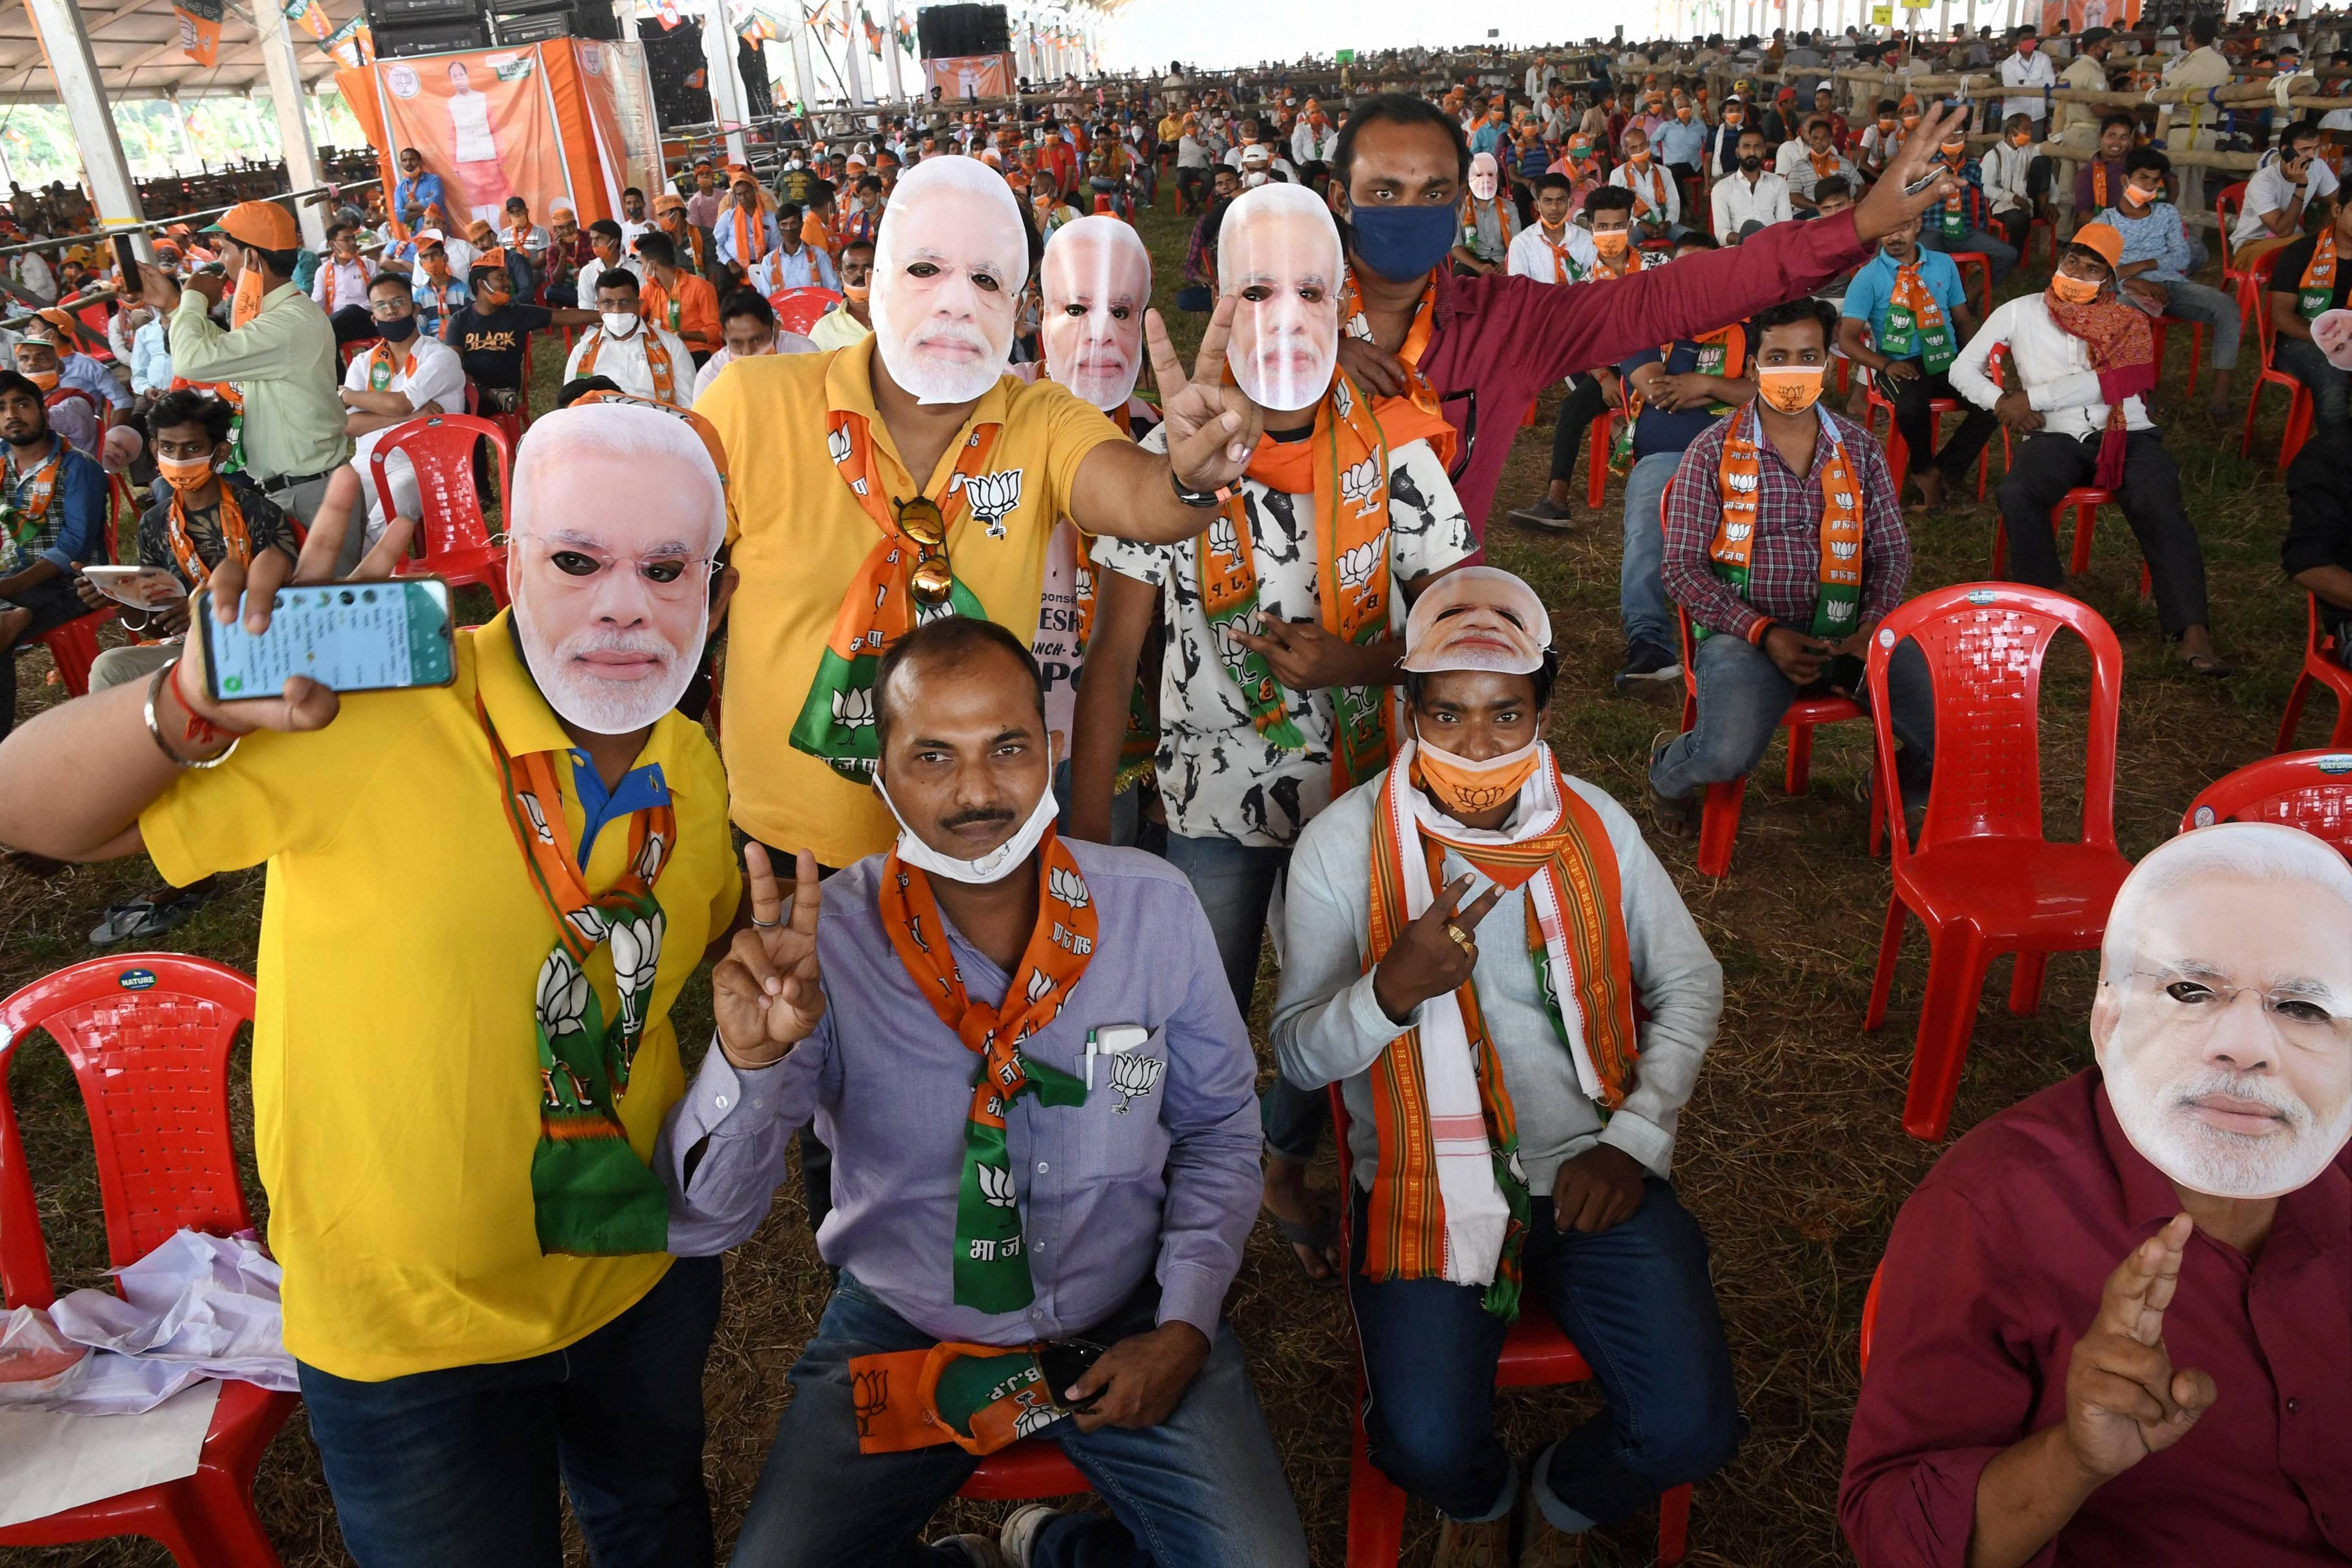 Patna:BJP supporters during Prime Minister Narendra Modi's election rally during the second leg of his campaign for Bihar assembly elections, in Patna, Wednesday, Oct. 28, 2020. (PTI Photo)(PTI28-10-2020_000169B)